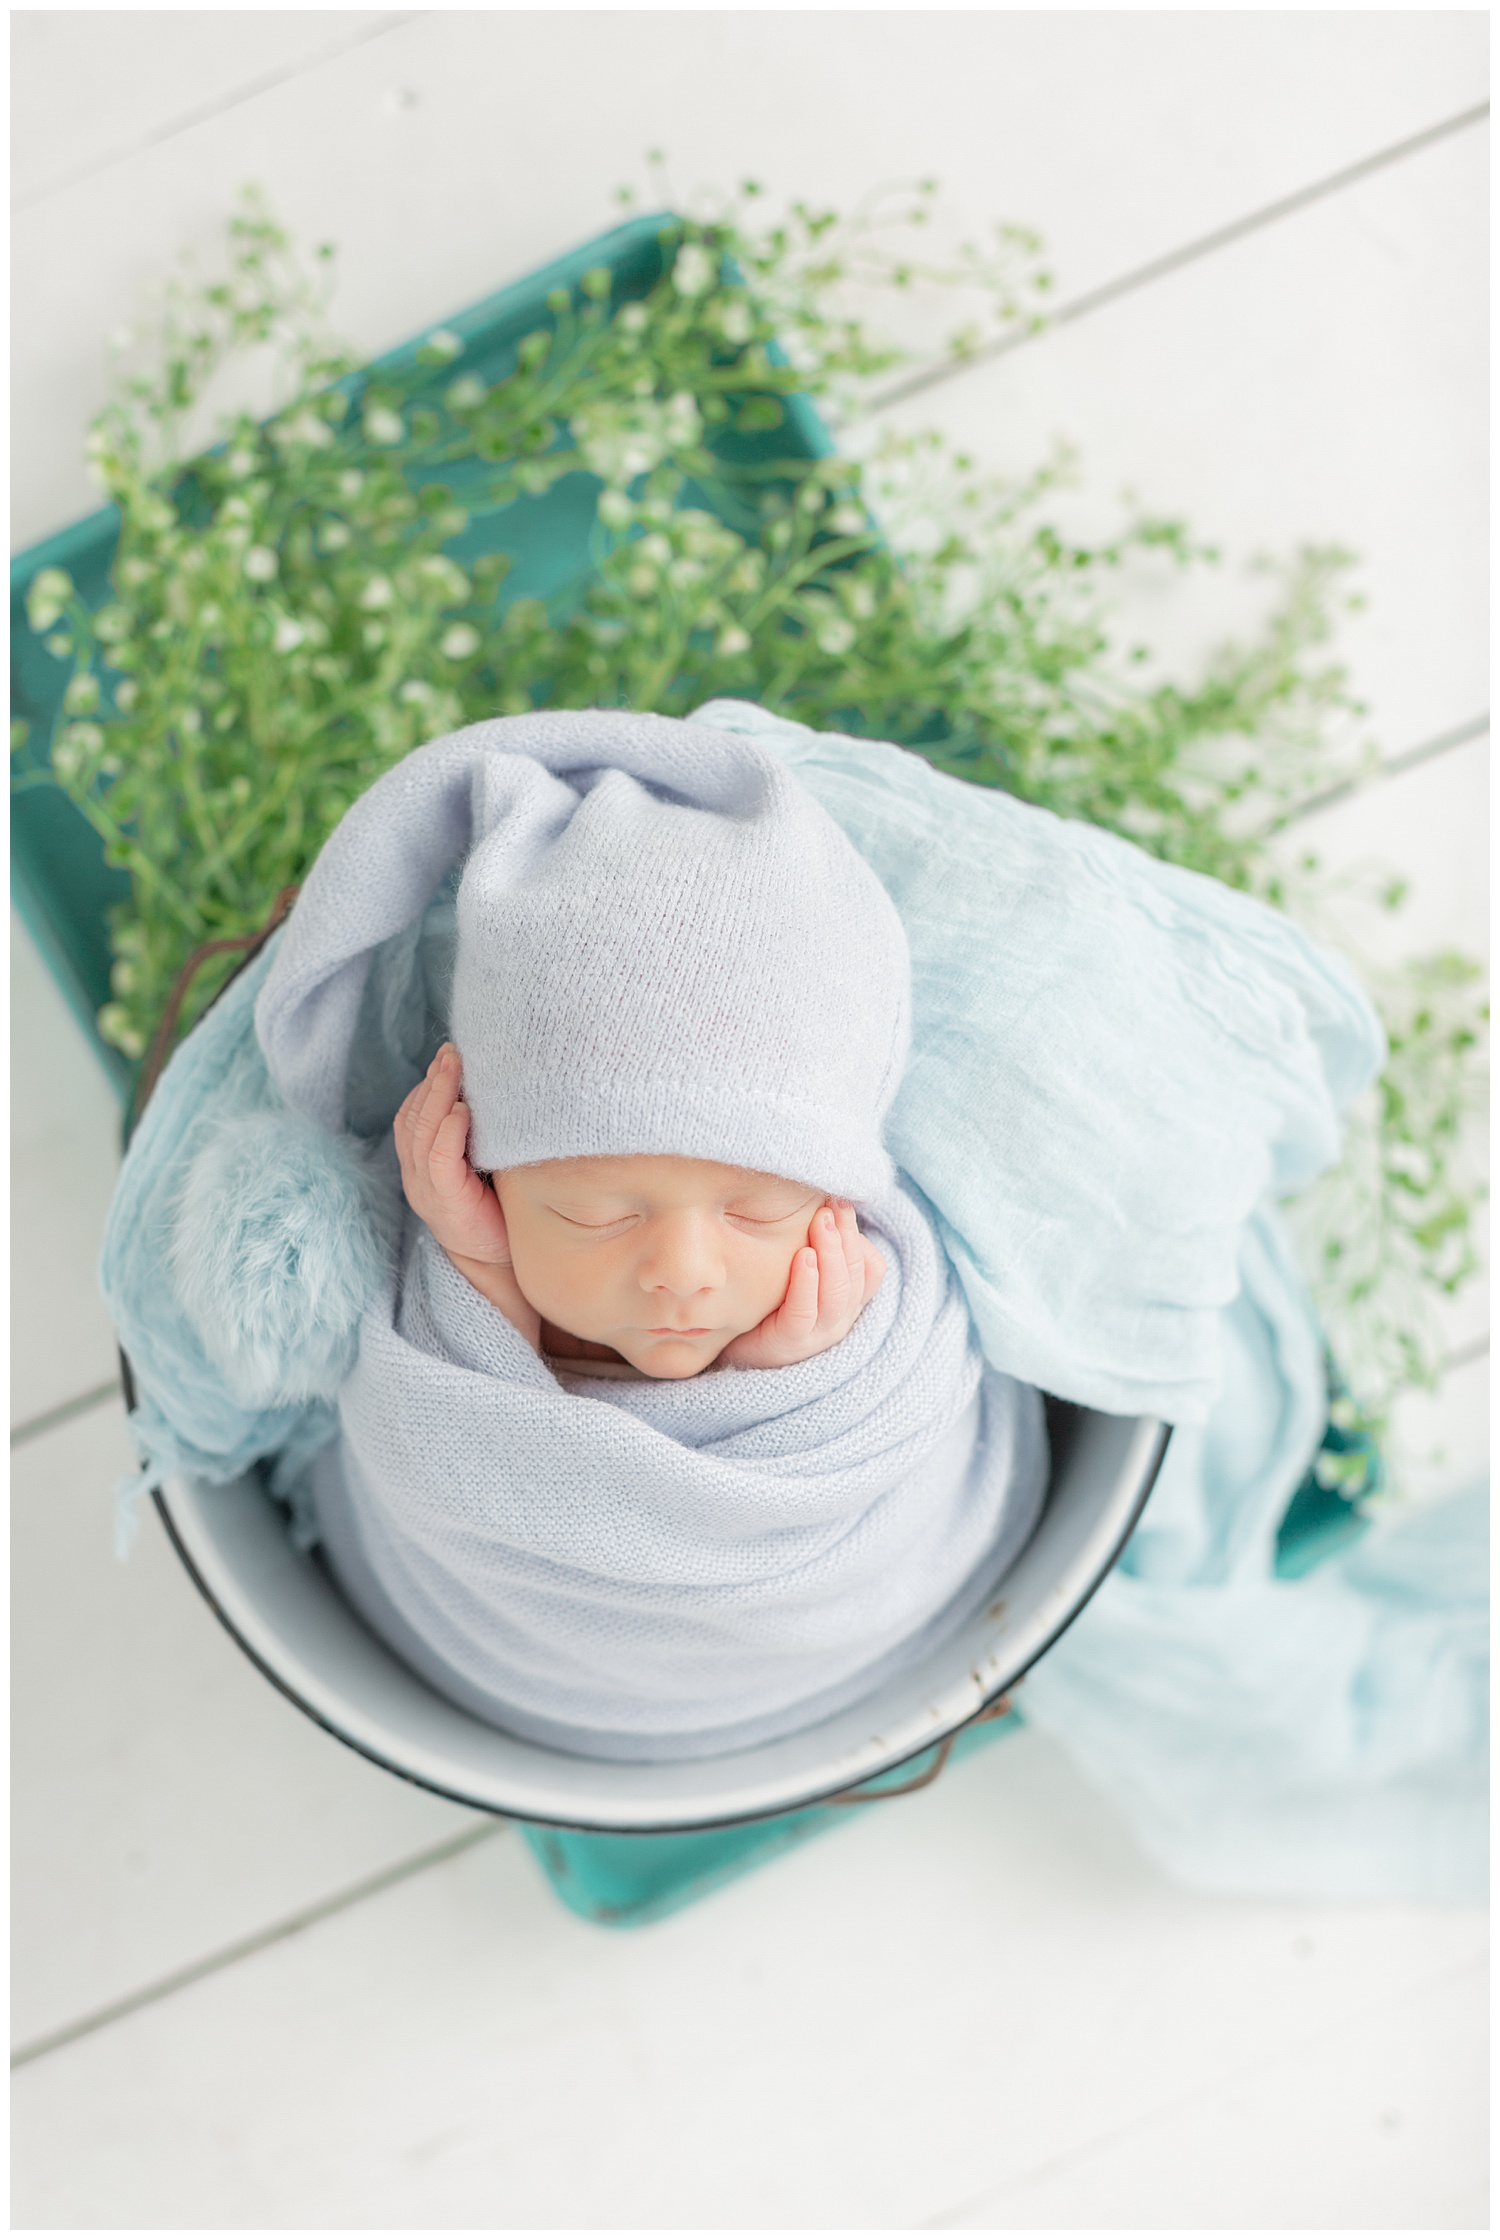 Baby boy Hayes lays in a bucket surrounded with greenery while swaddled in a soft knit blue wrap and night cap | CB Studio